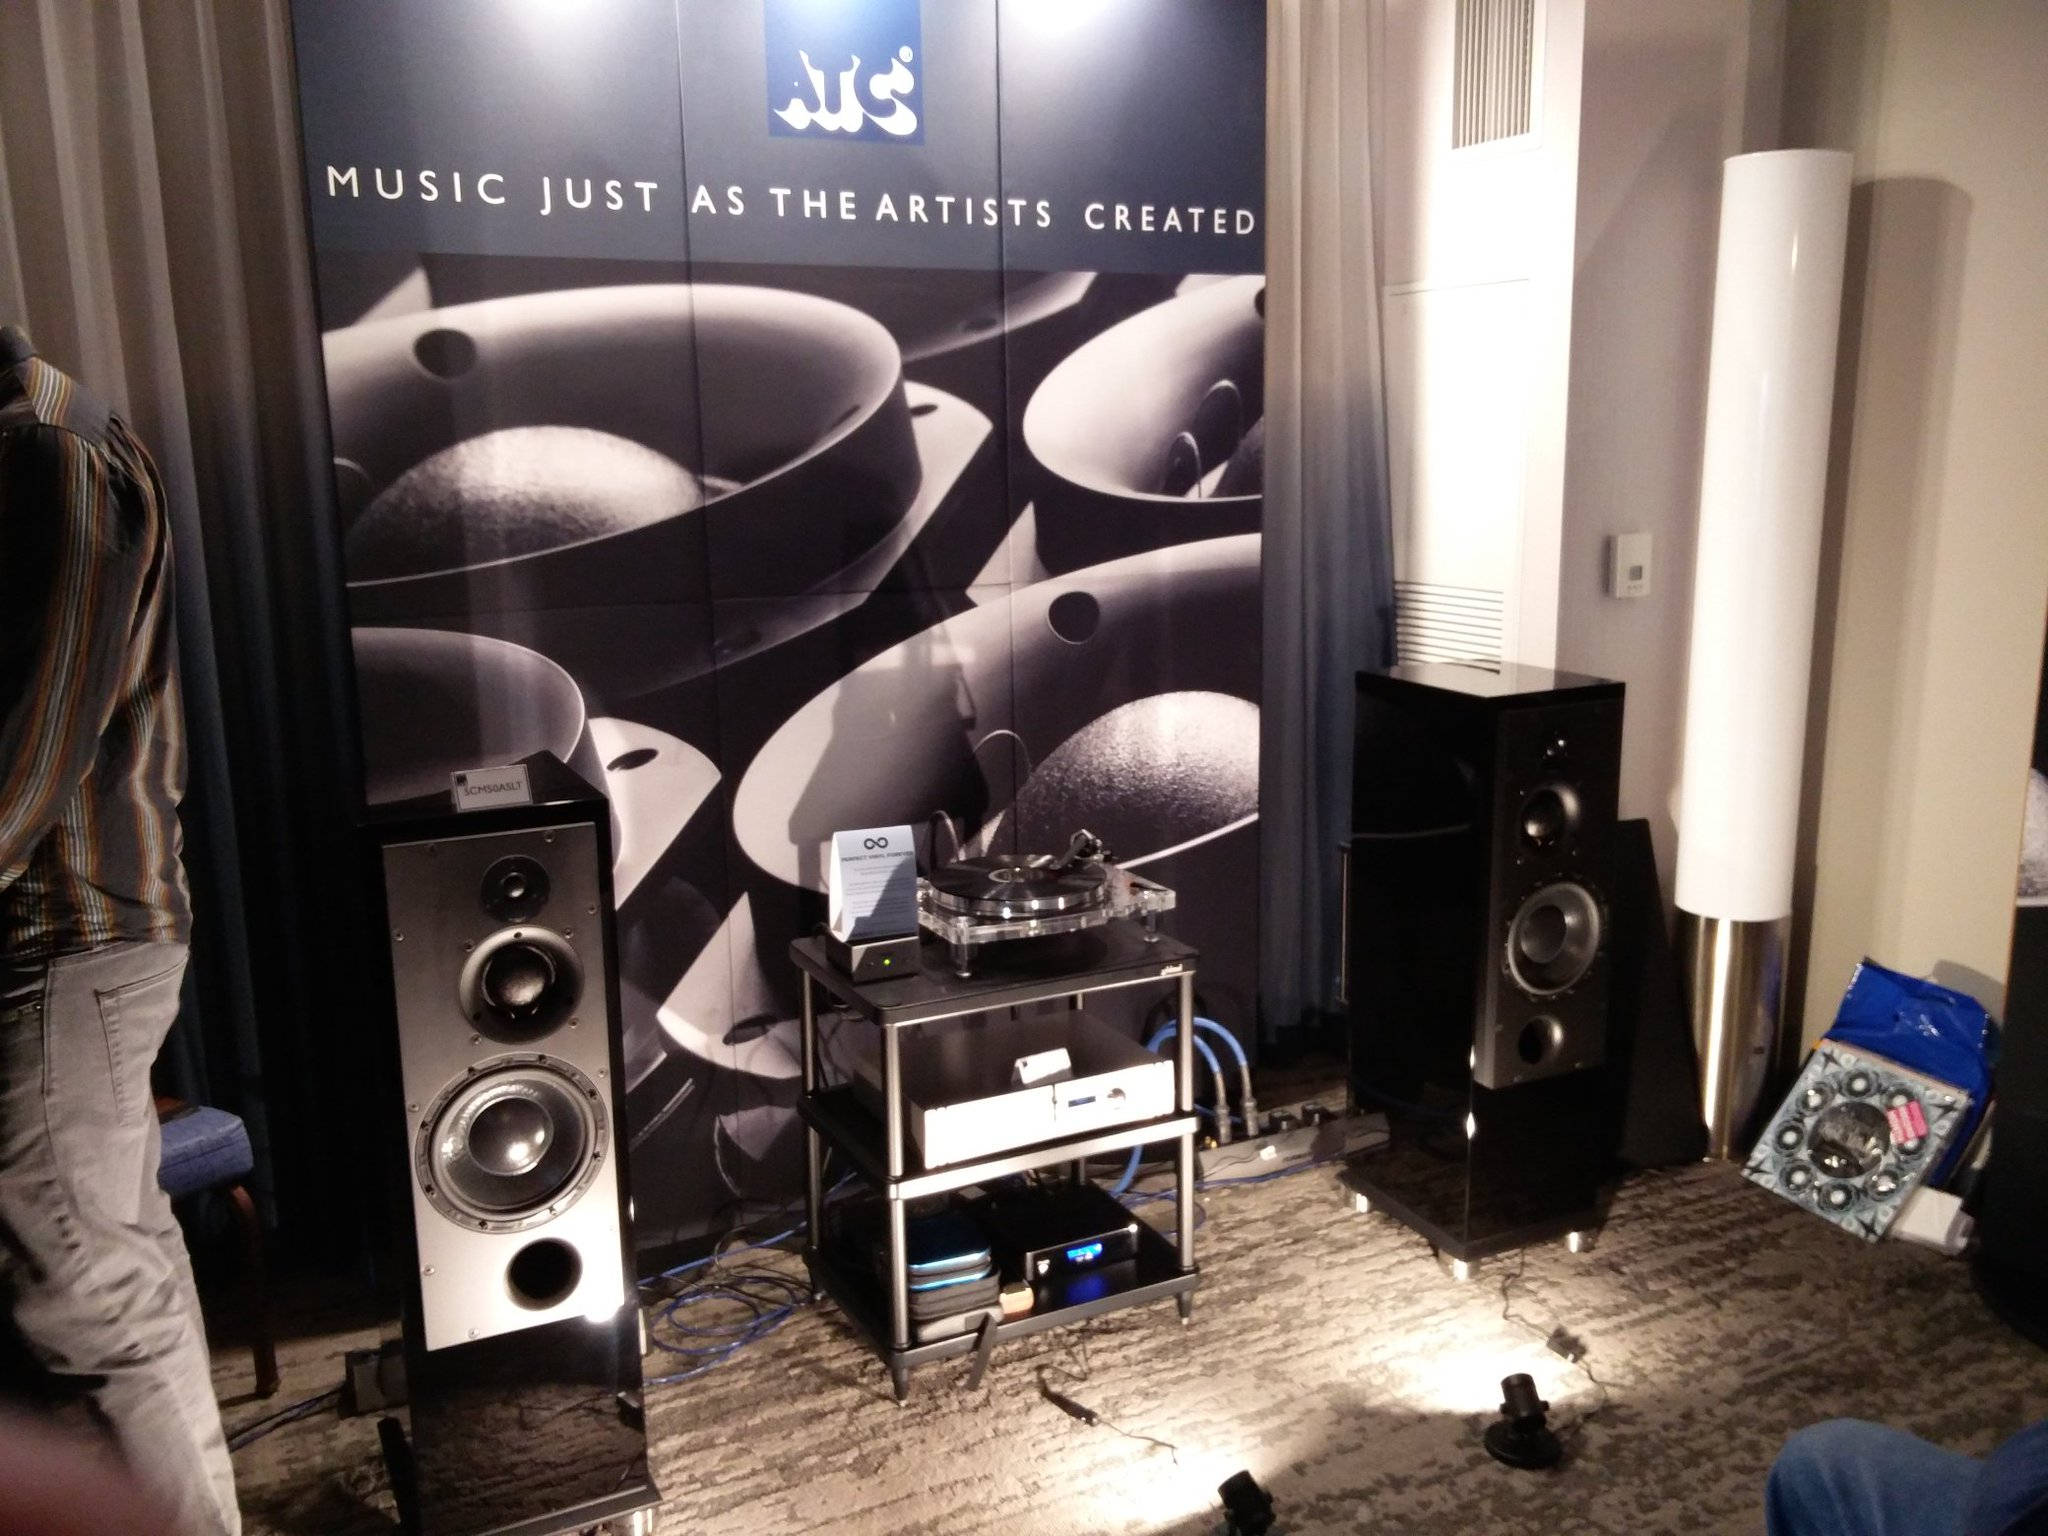 Hifishark Com On Twitter The Atc Speakers Room At Axpona2018 Just Sounds Good Very Good Indeed Hifi Highendaudio The search result contains affiliate links to partners of hifishark. twitter